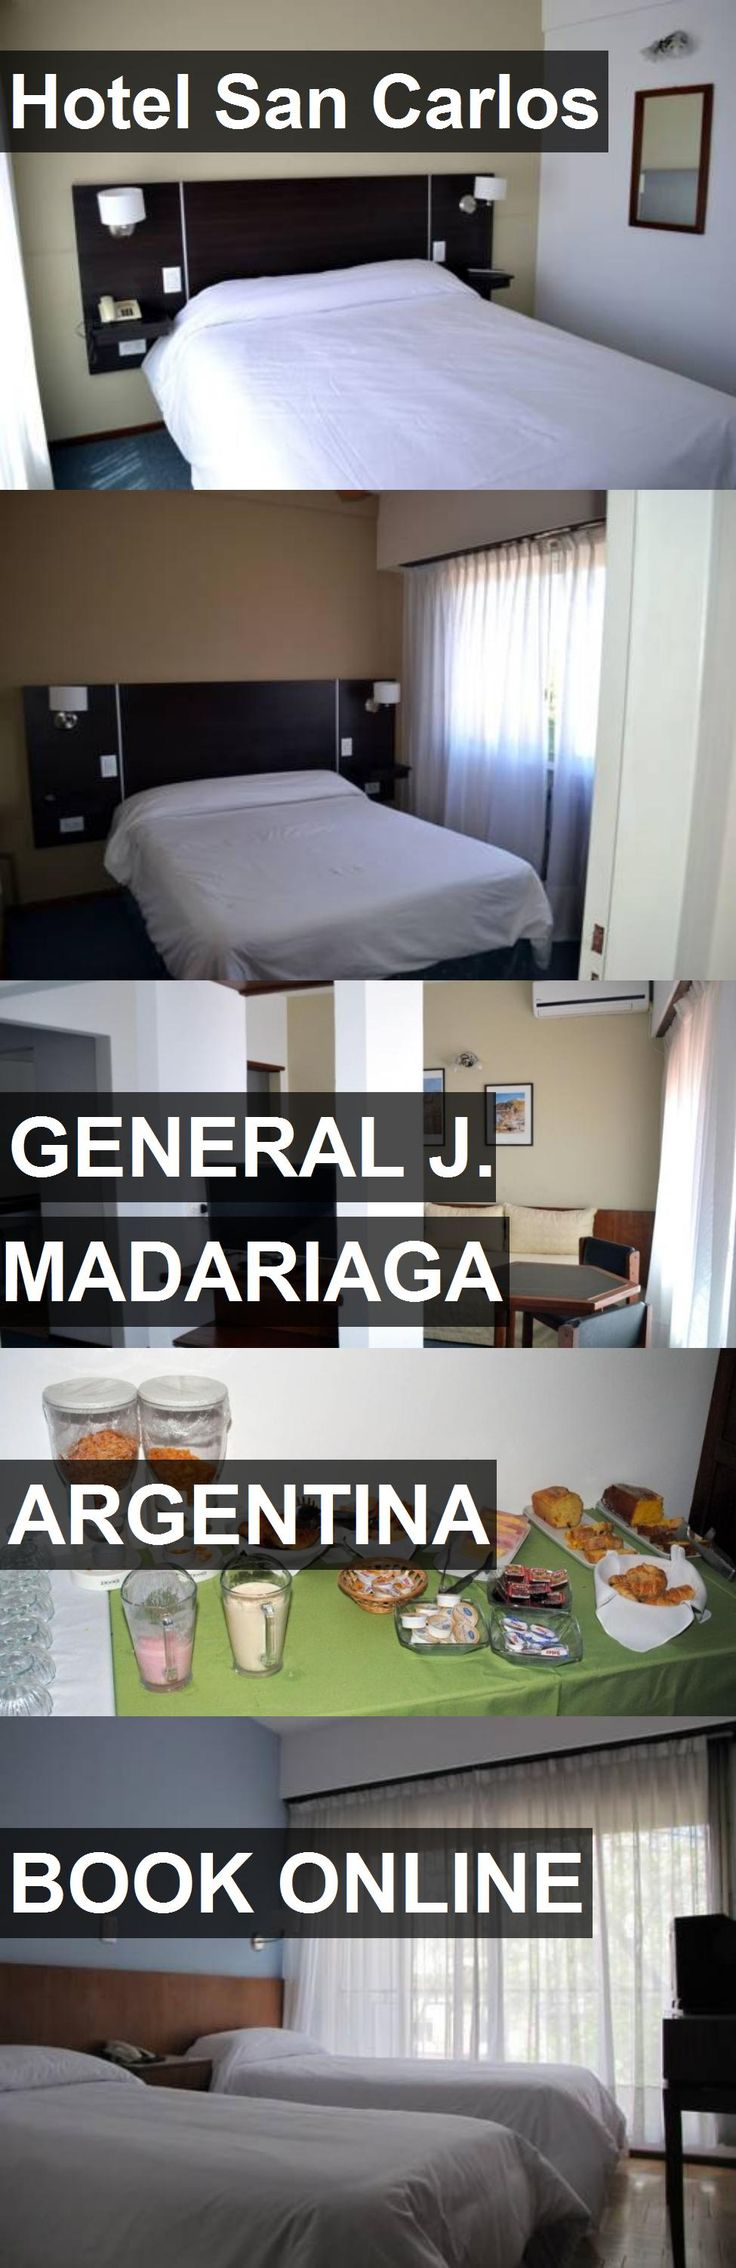 Hotel Hotel San Carlos in General J. Madariaga, Argentina. For more information, photos, reviews and best prices please follow the link. #Argentina #GeneralJ.Madariaga #HotelSanCarlos #hotel #travel #vacation